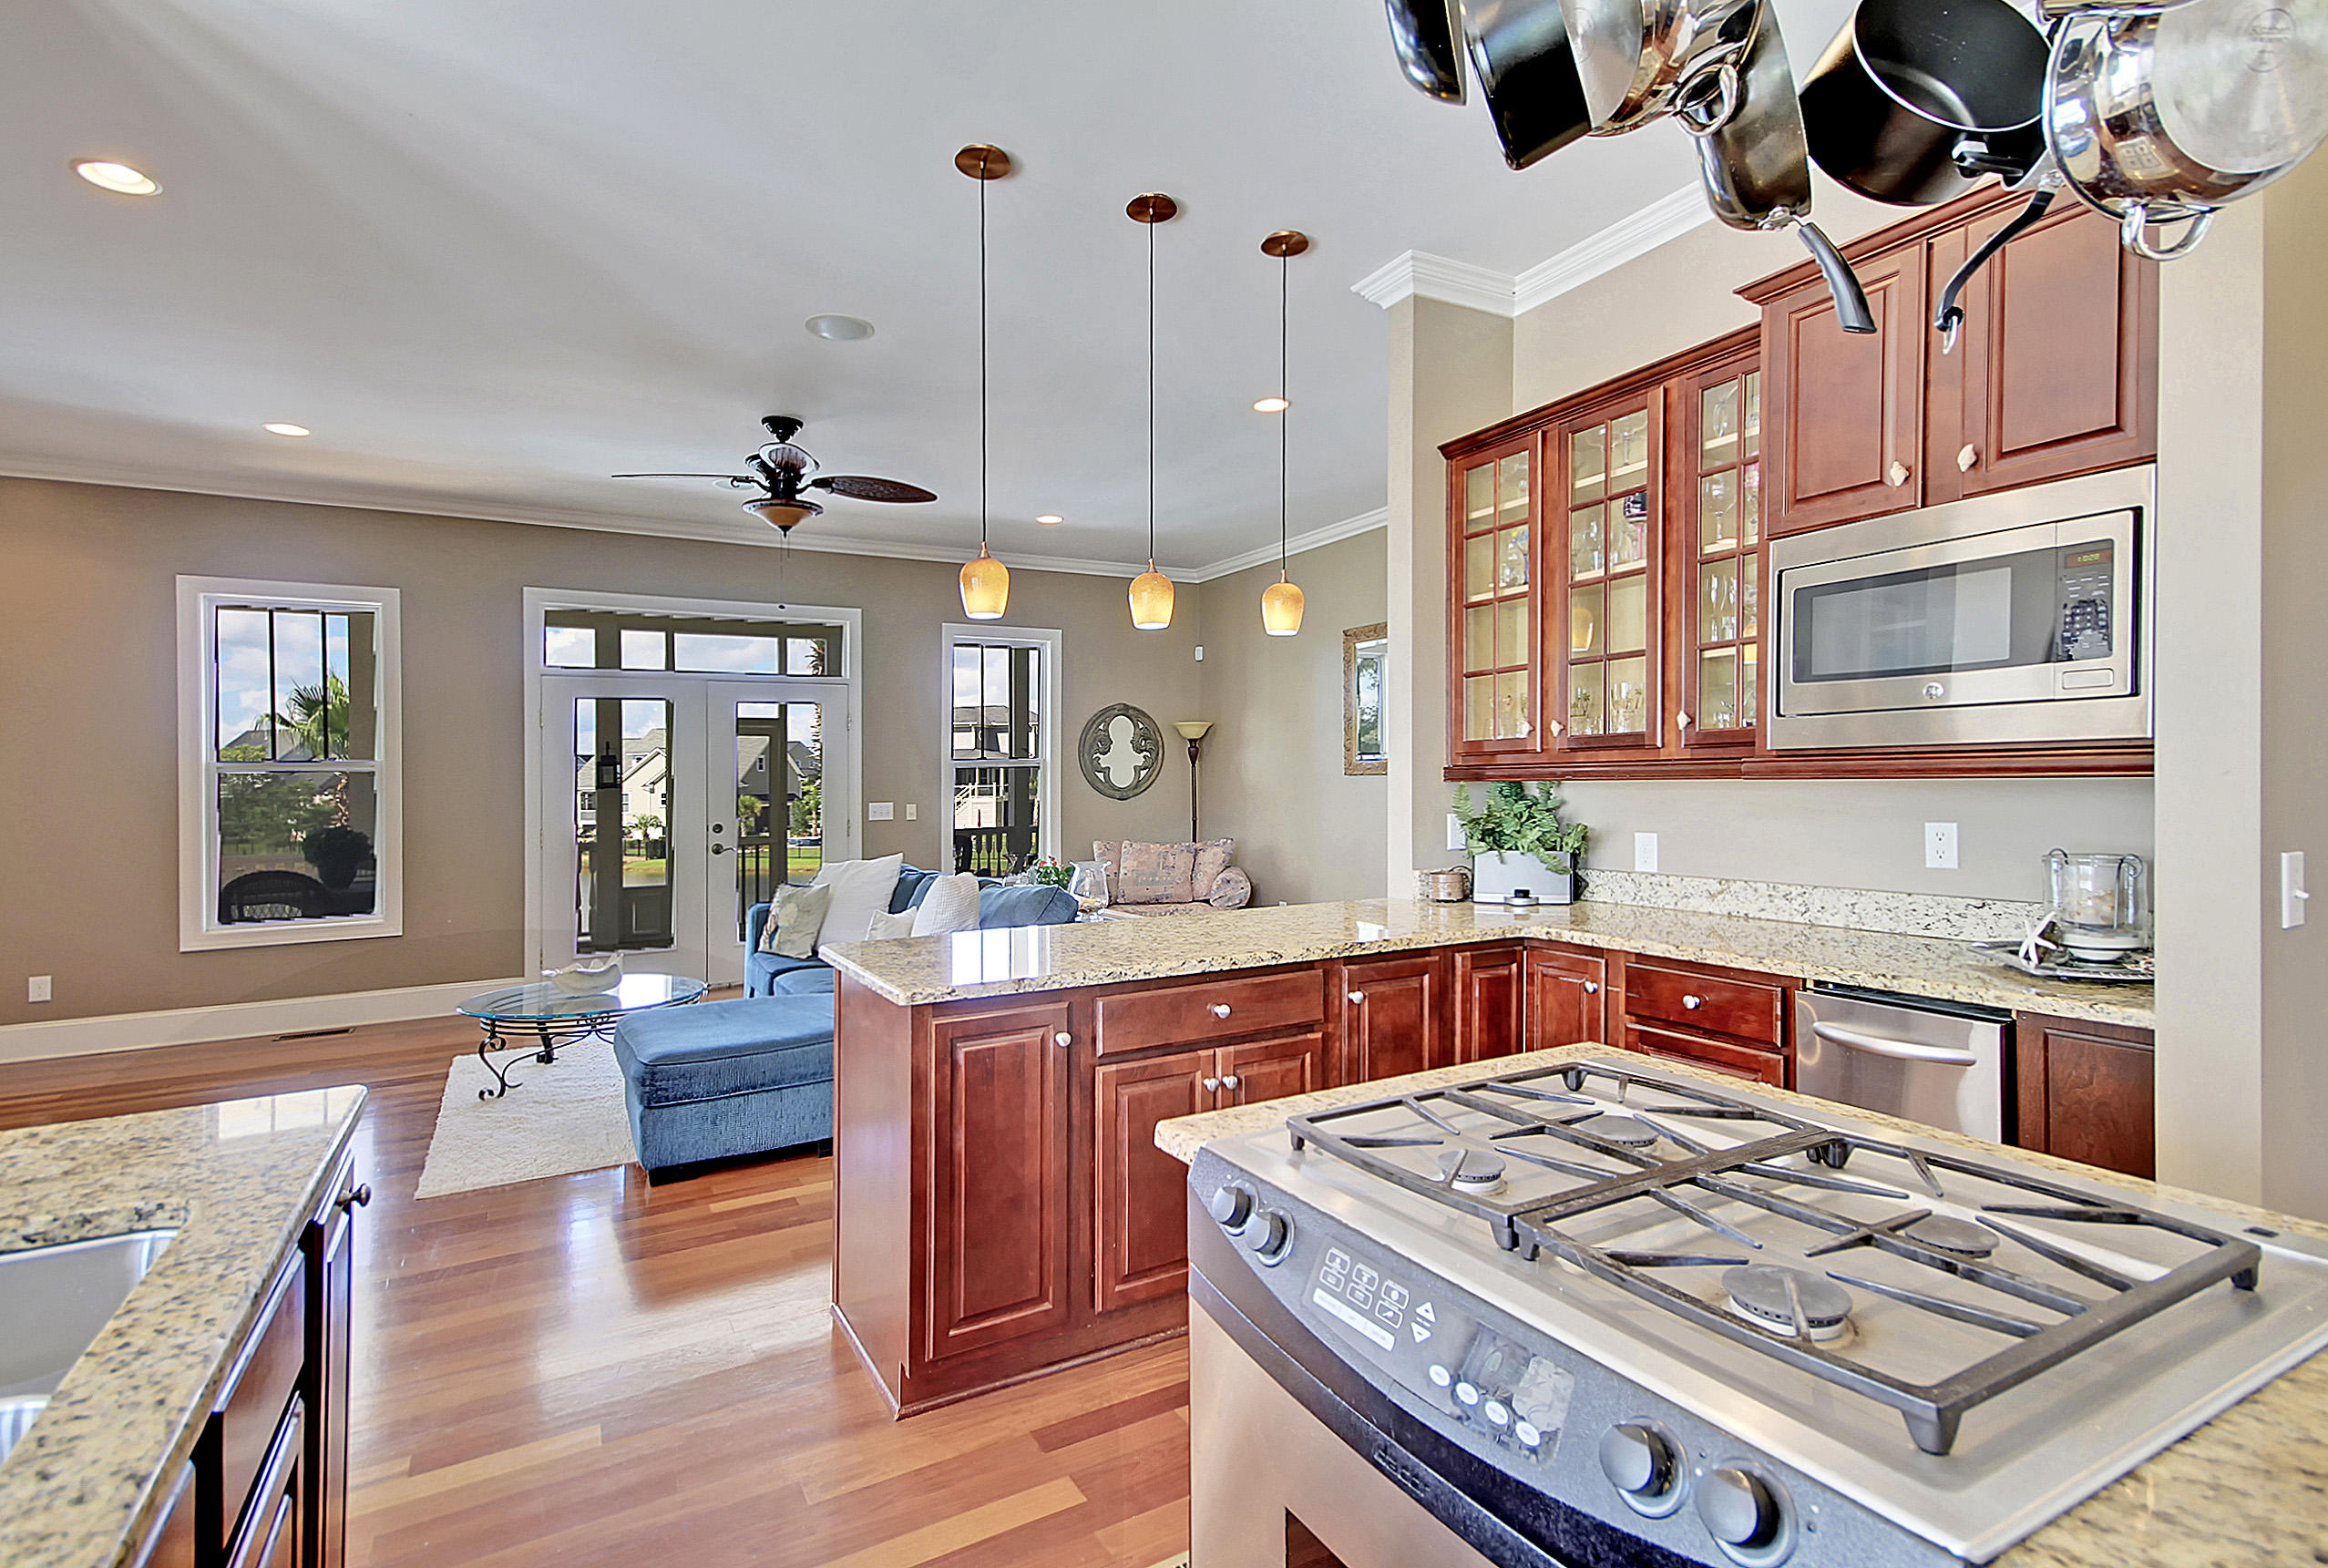 Rivertowne Country Club Homes For Sale - 1536 Rivertowne Country Club, Mount Pleasant, SC - 12